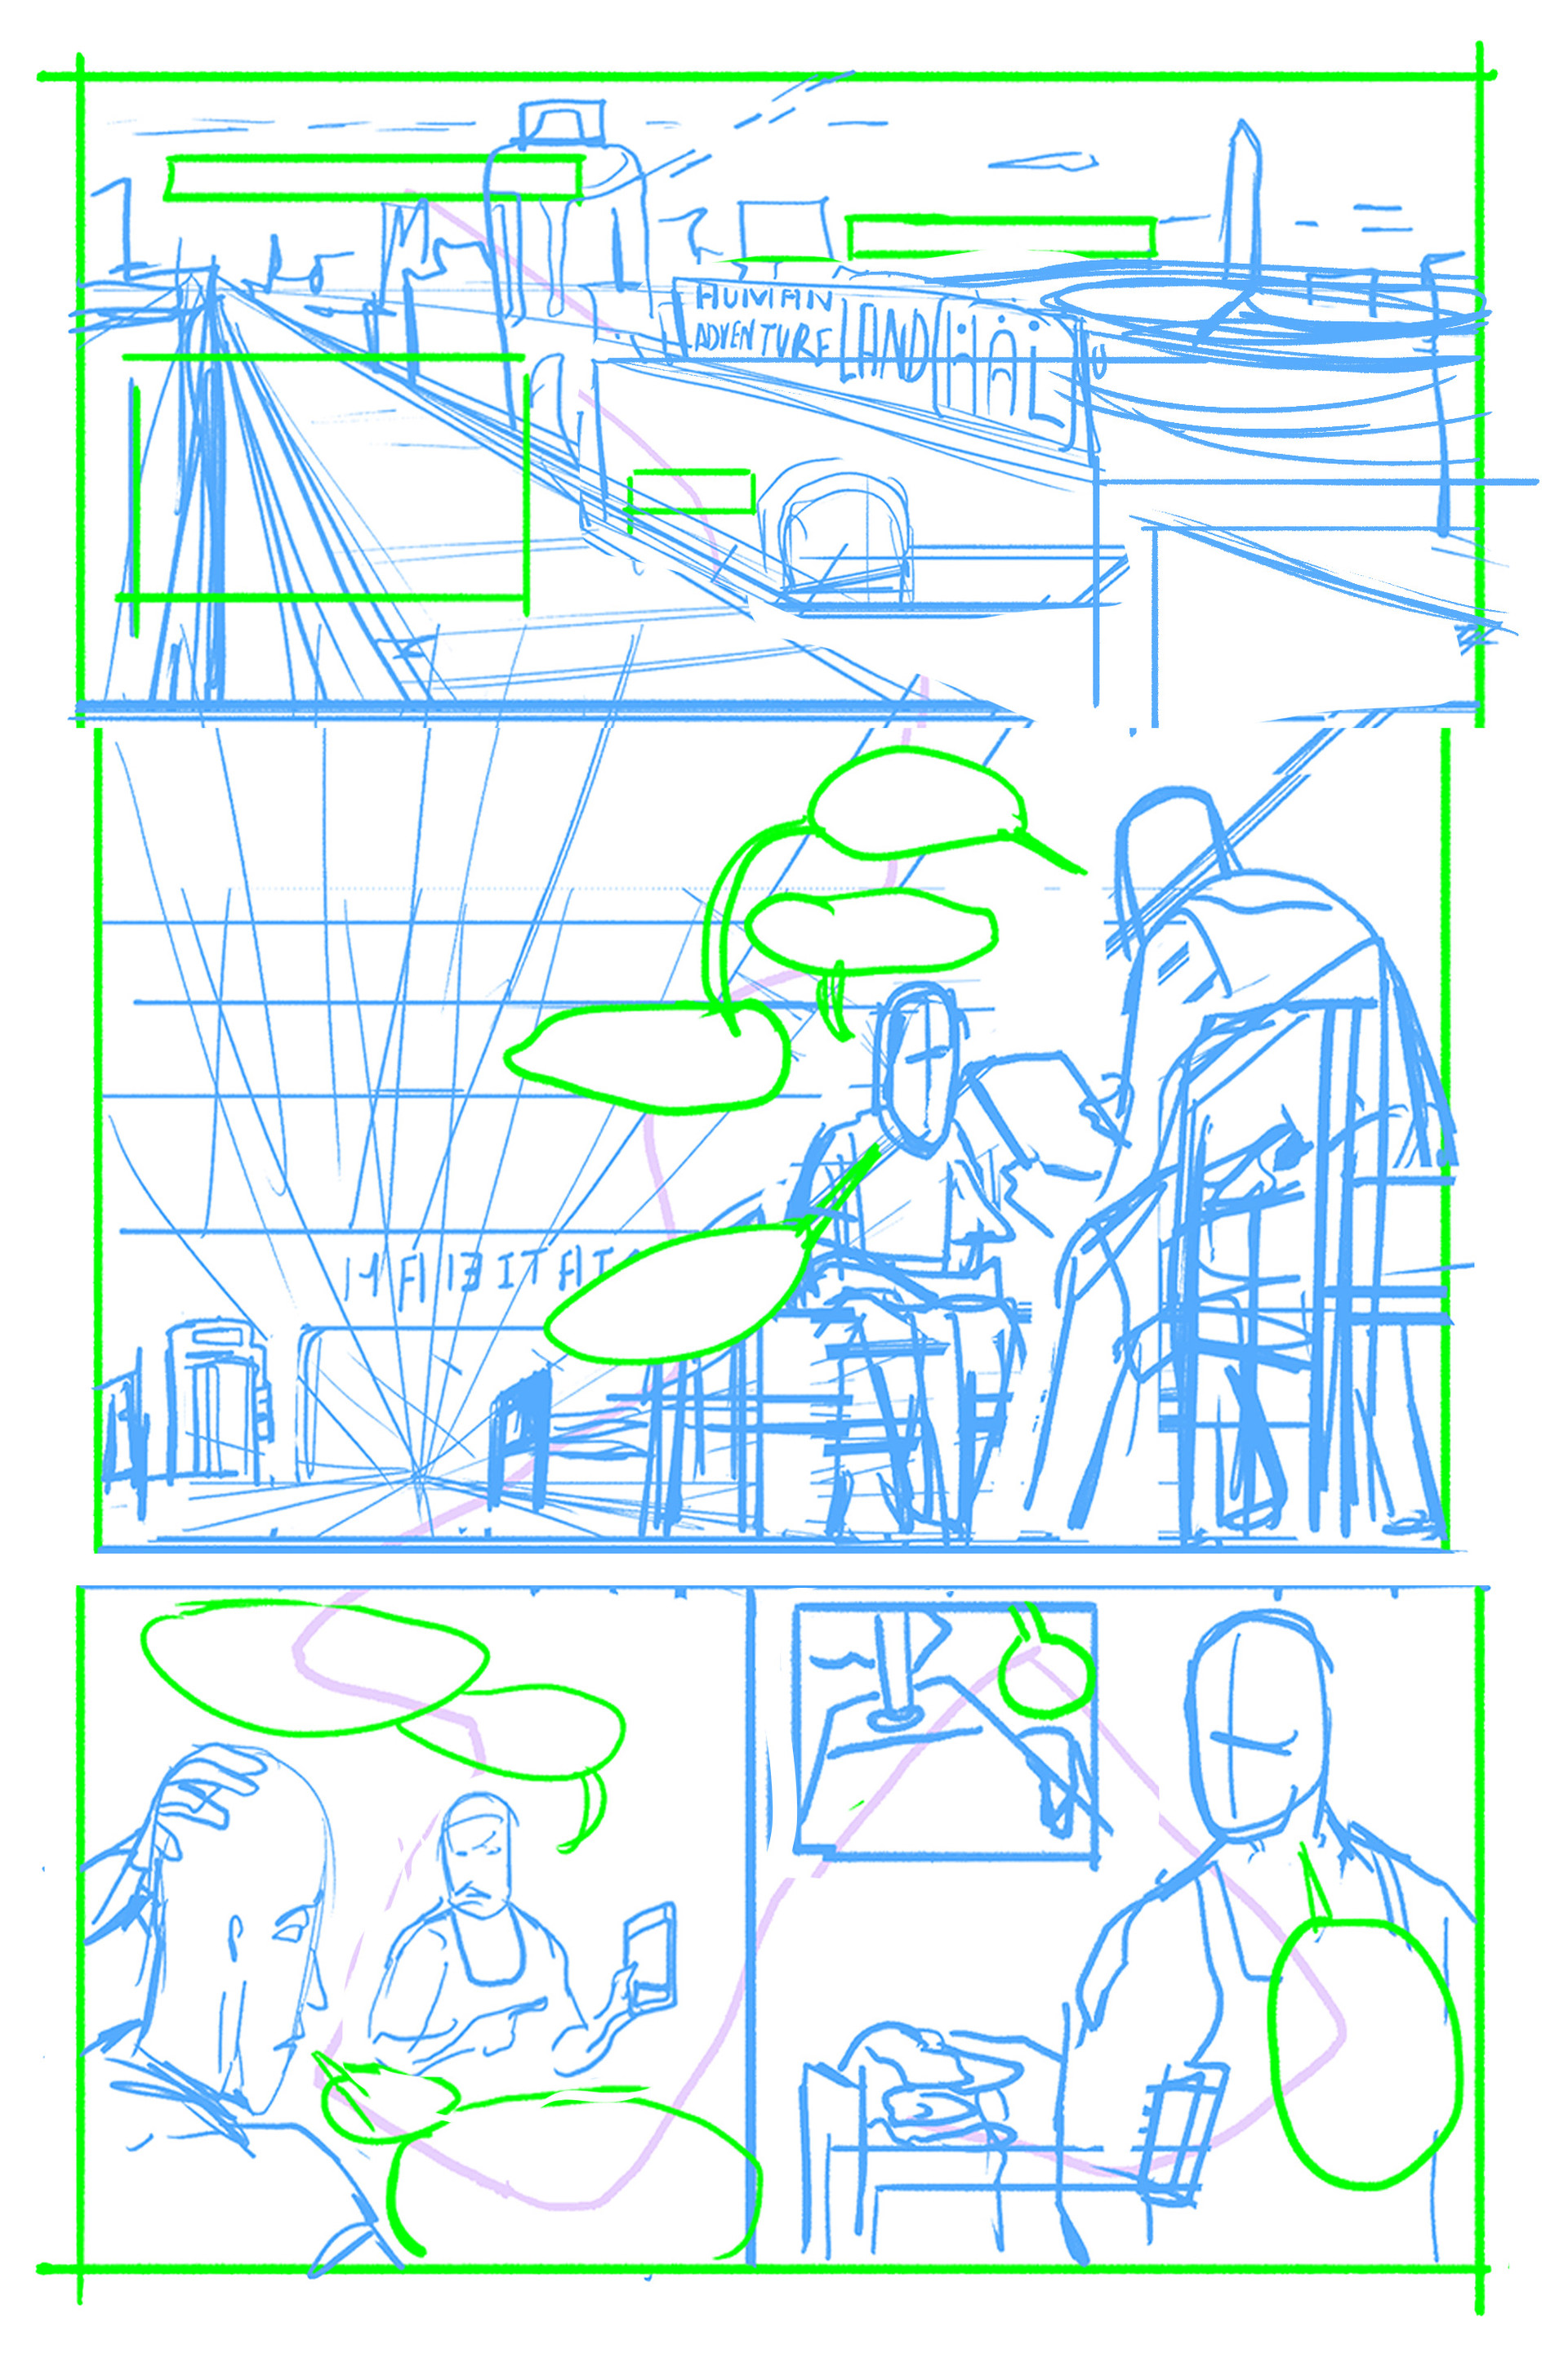 Elliot balson tof layouts1